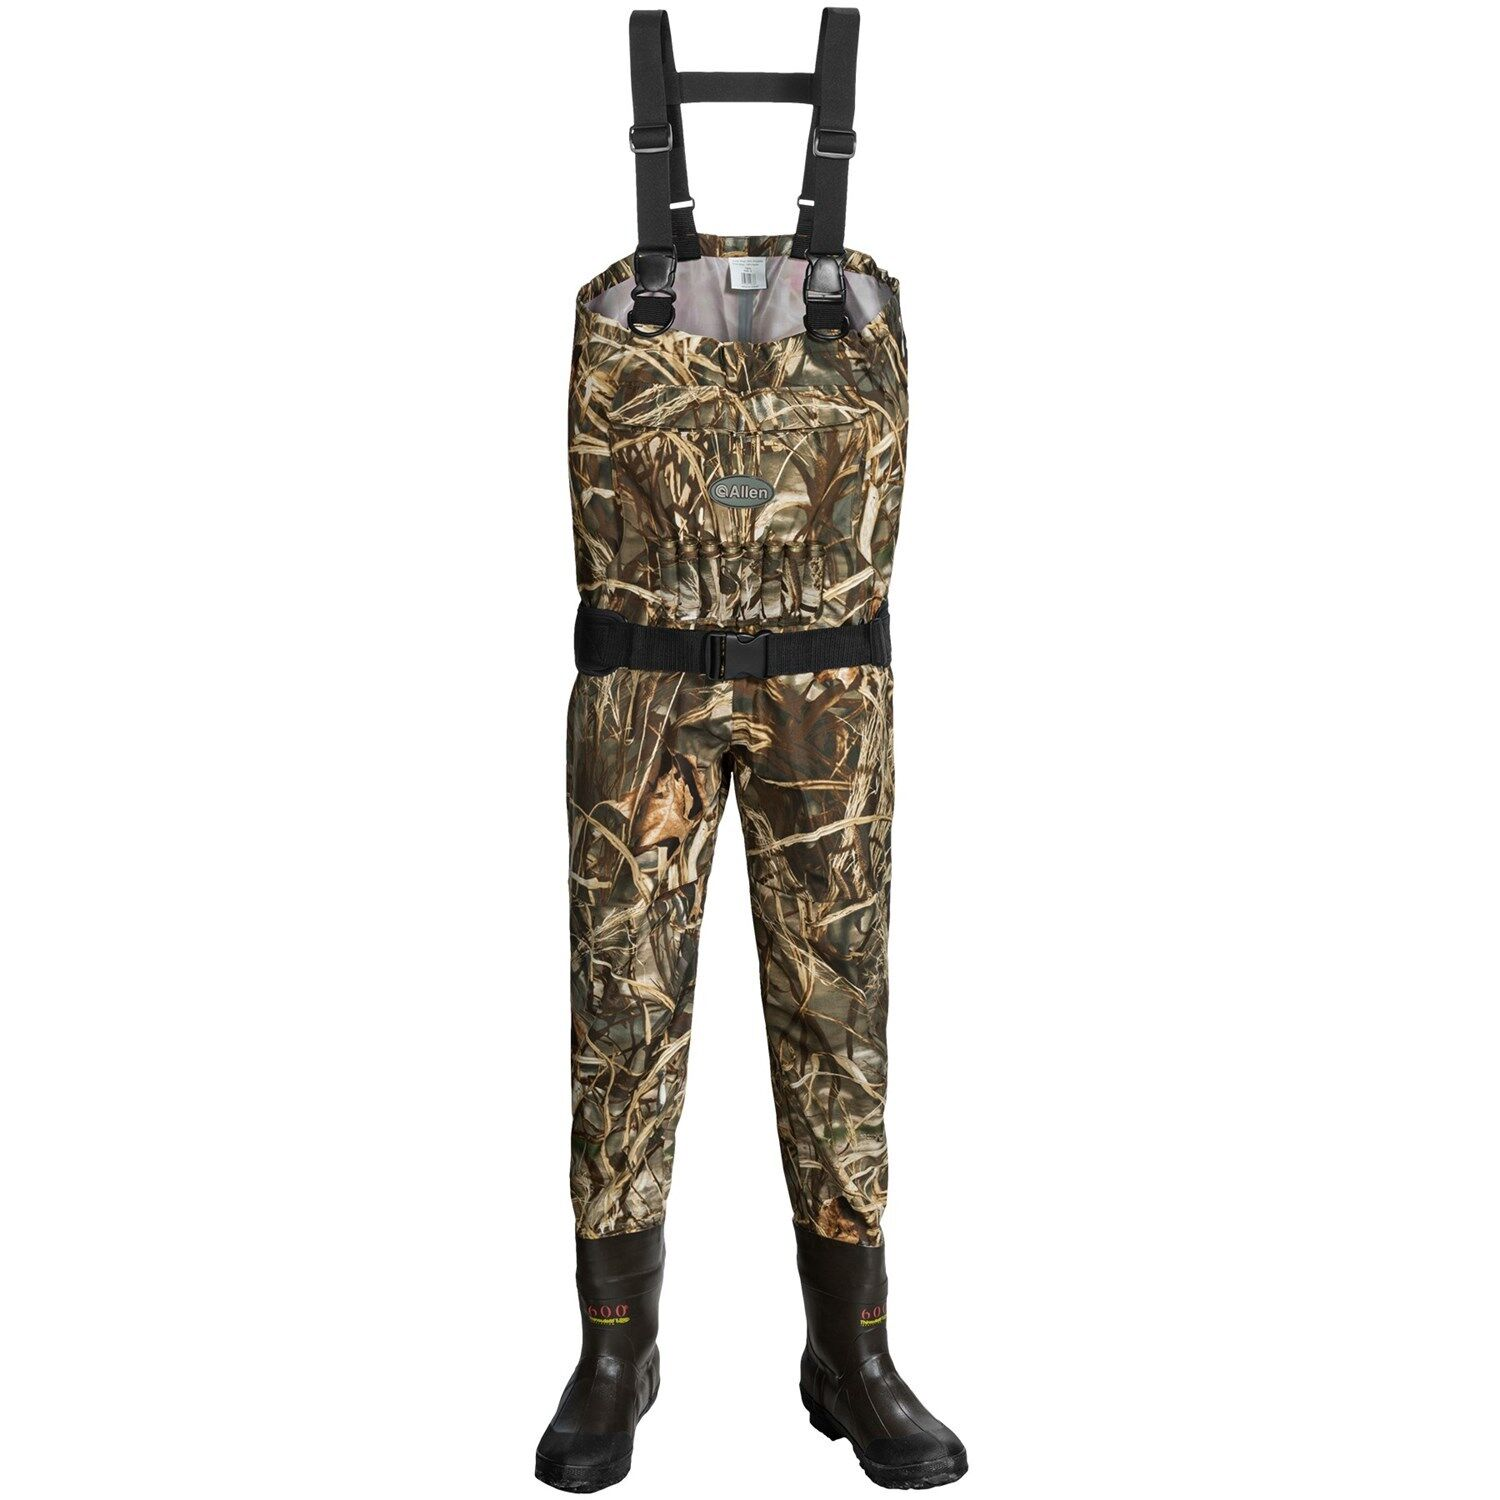 Allen Co bluee Bill Breathable Camo Hunting Chest Waders Insulated Boot - Size 8